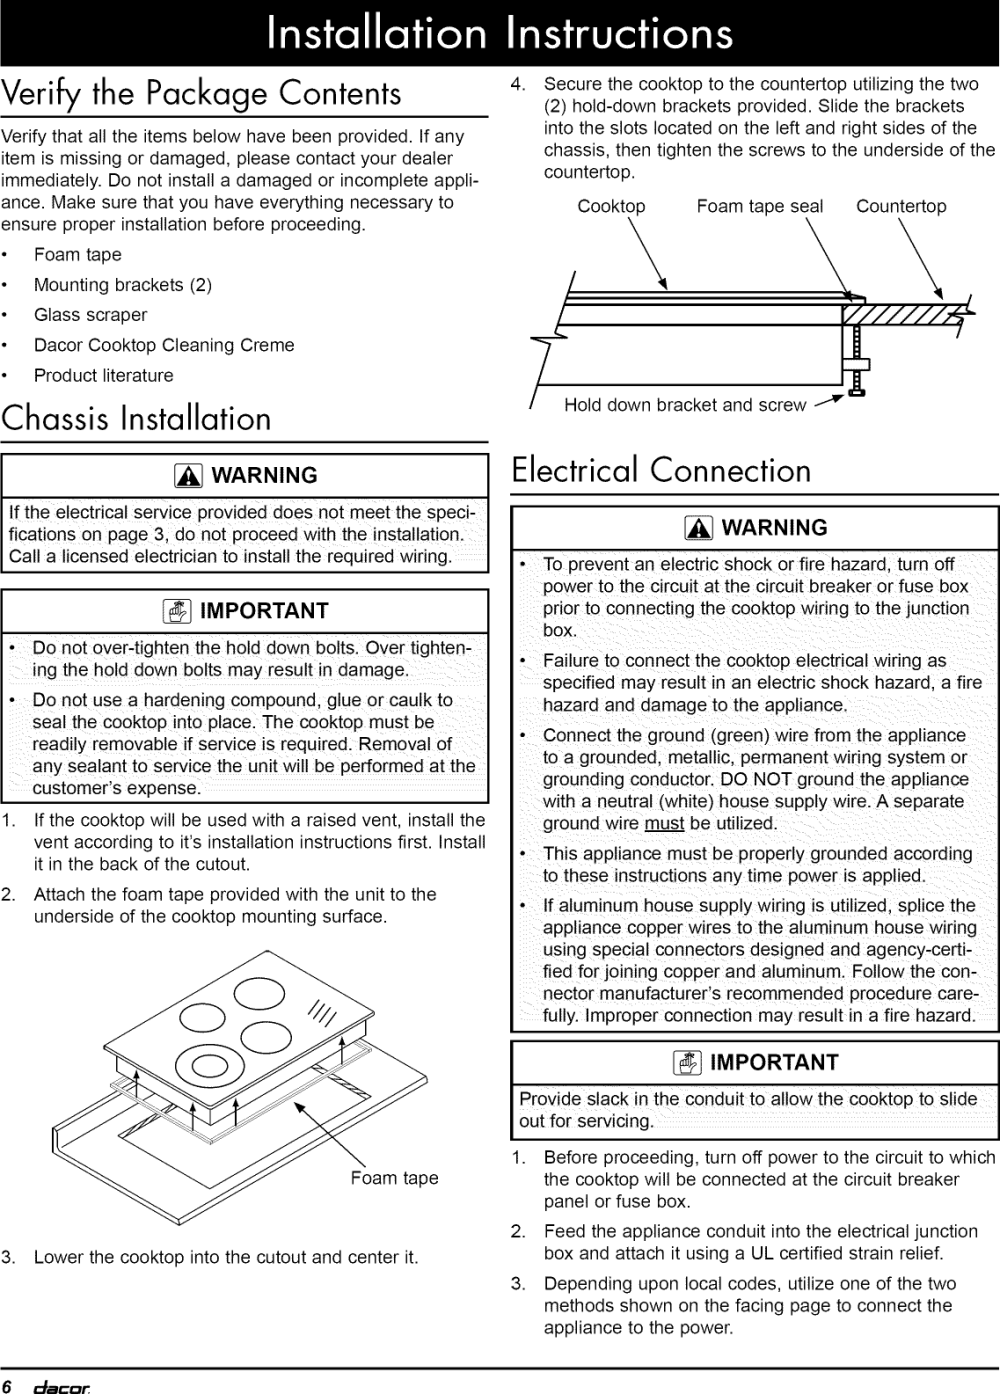 medium resolution of page 8 of 12 dacor ett3041b user manual cooktop manuals and guides 1102291l